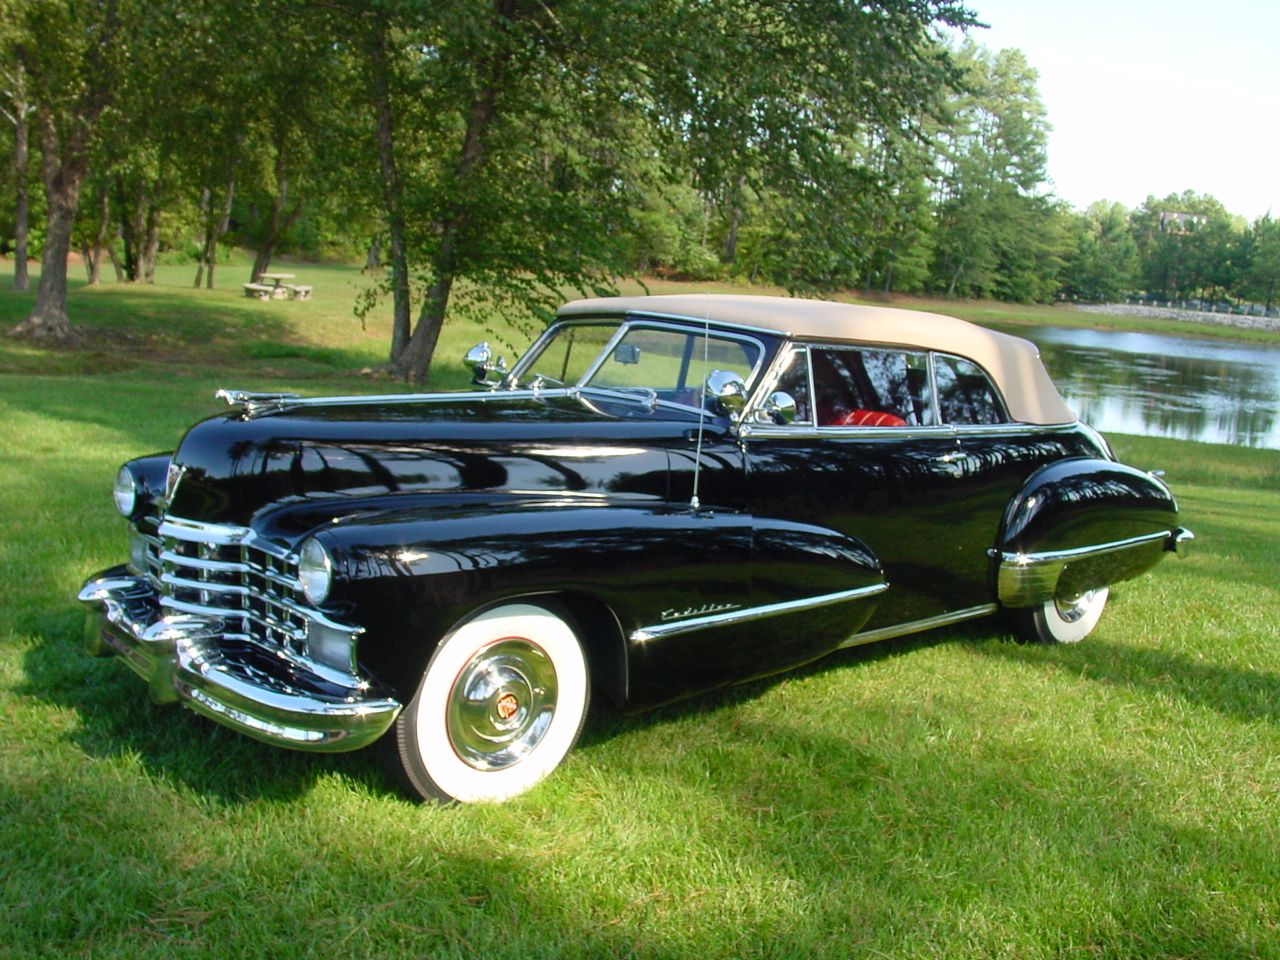 199 best Cadillac images on Pinterest | Vintage cars, Vintage ...